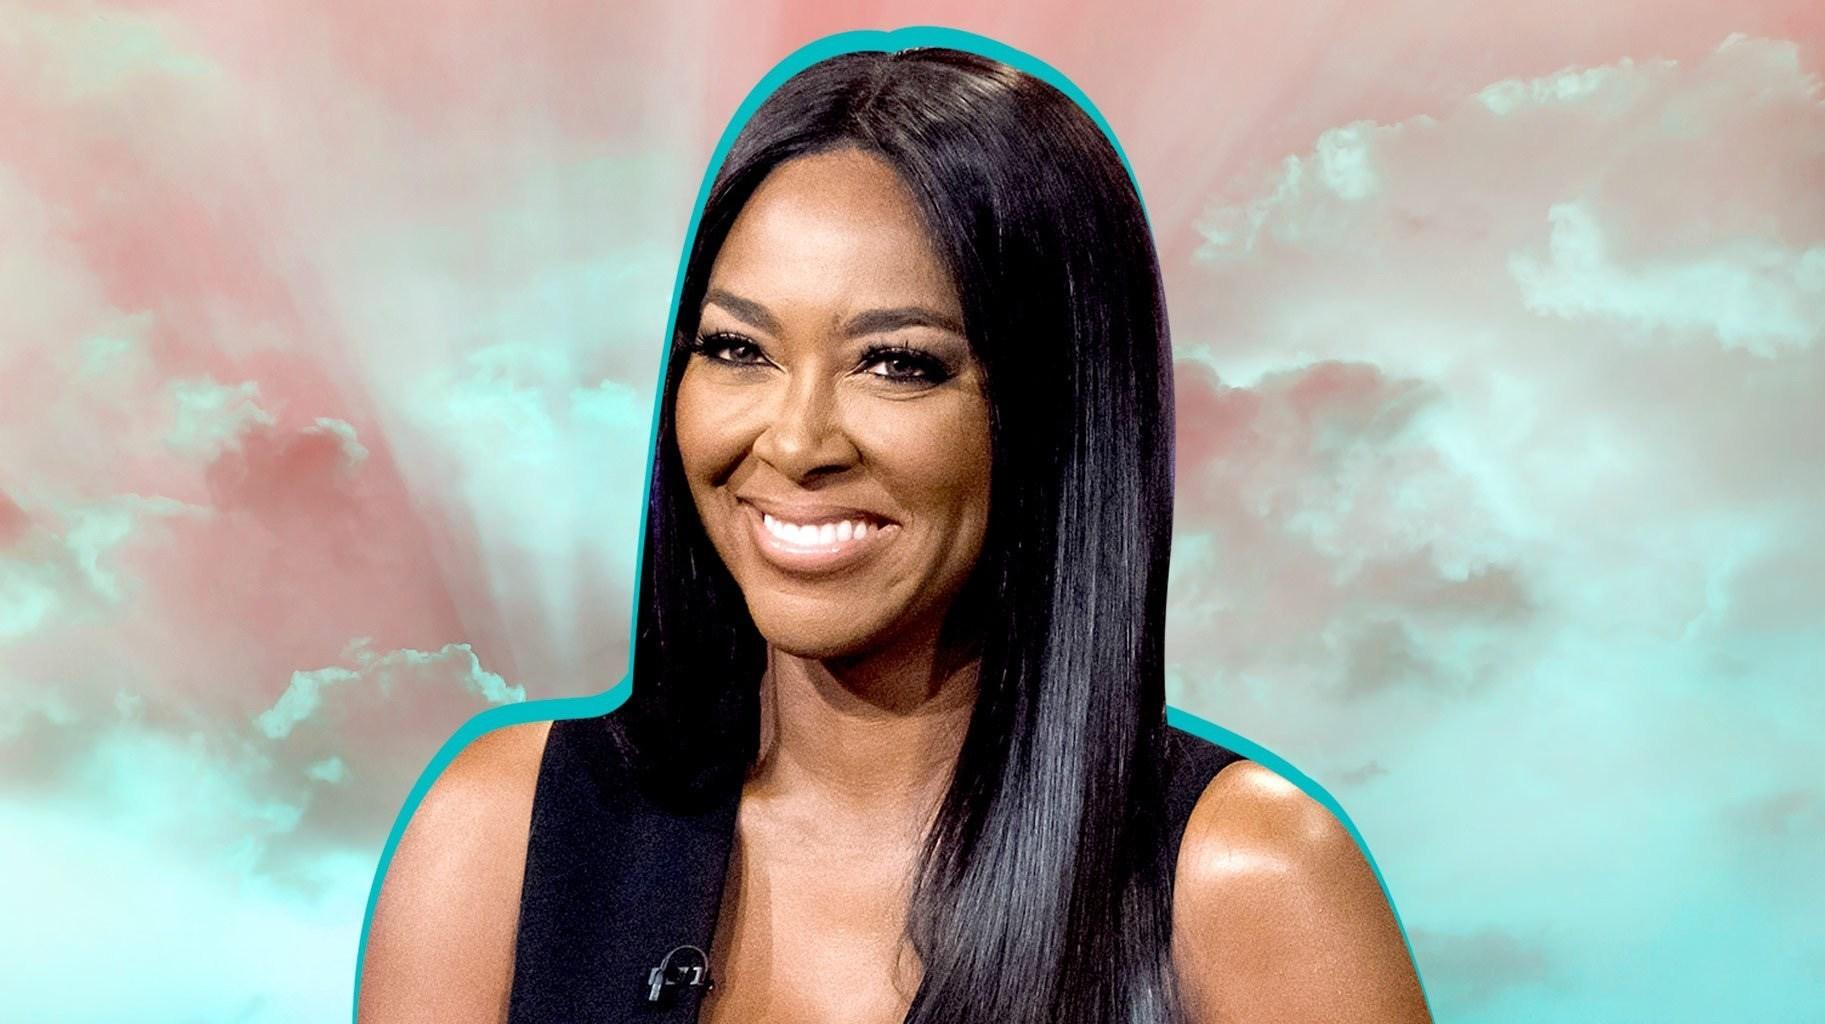 Kenya Moore Shares A Gorgeous Photo Featuring Her Happy Baby, Brooklyn Daly